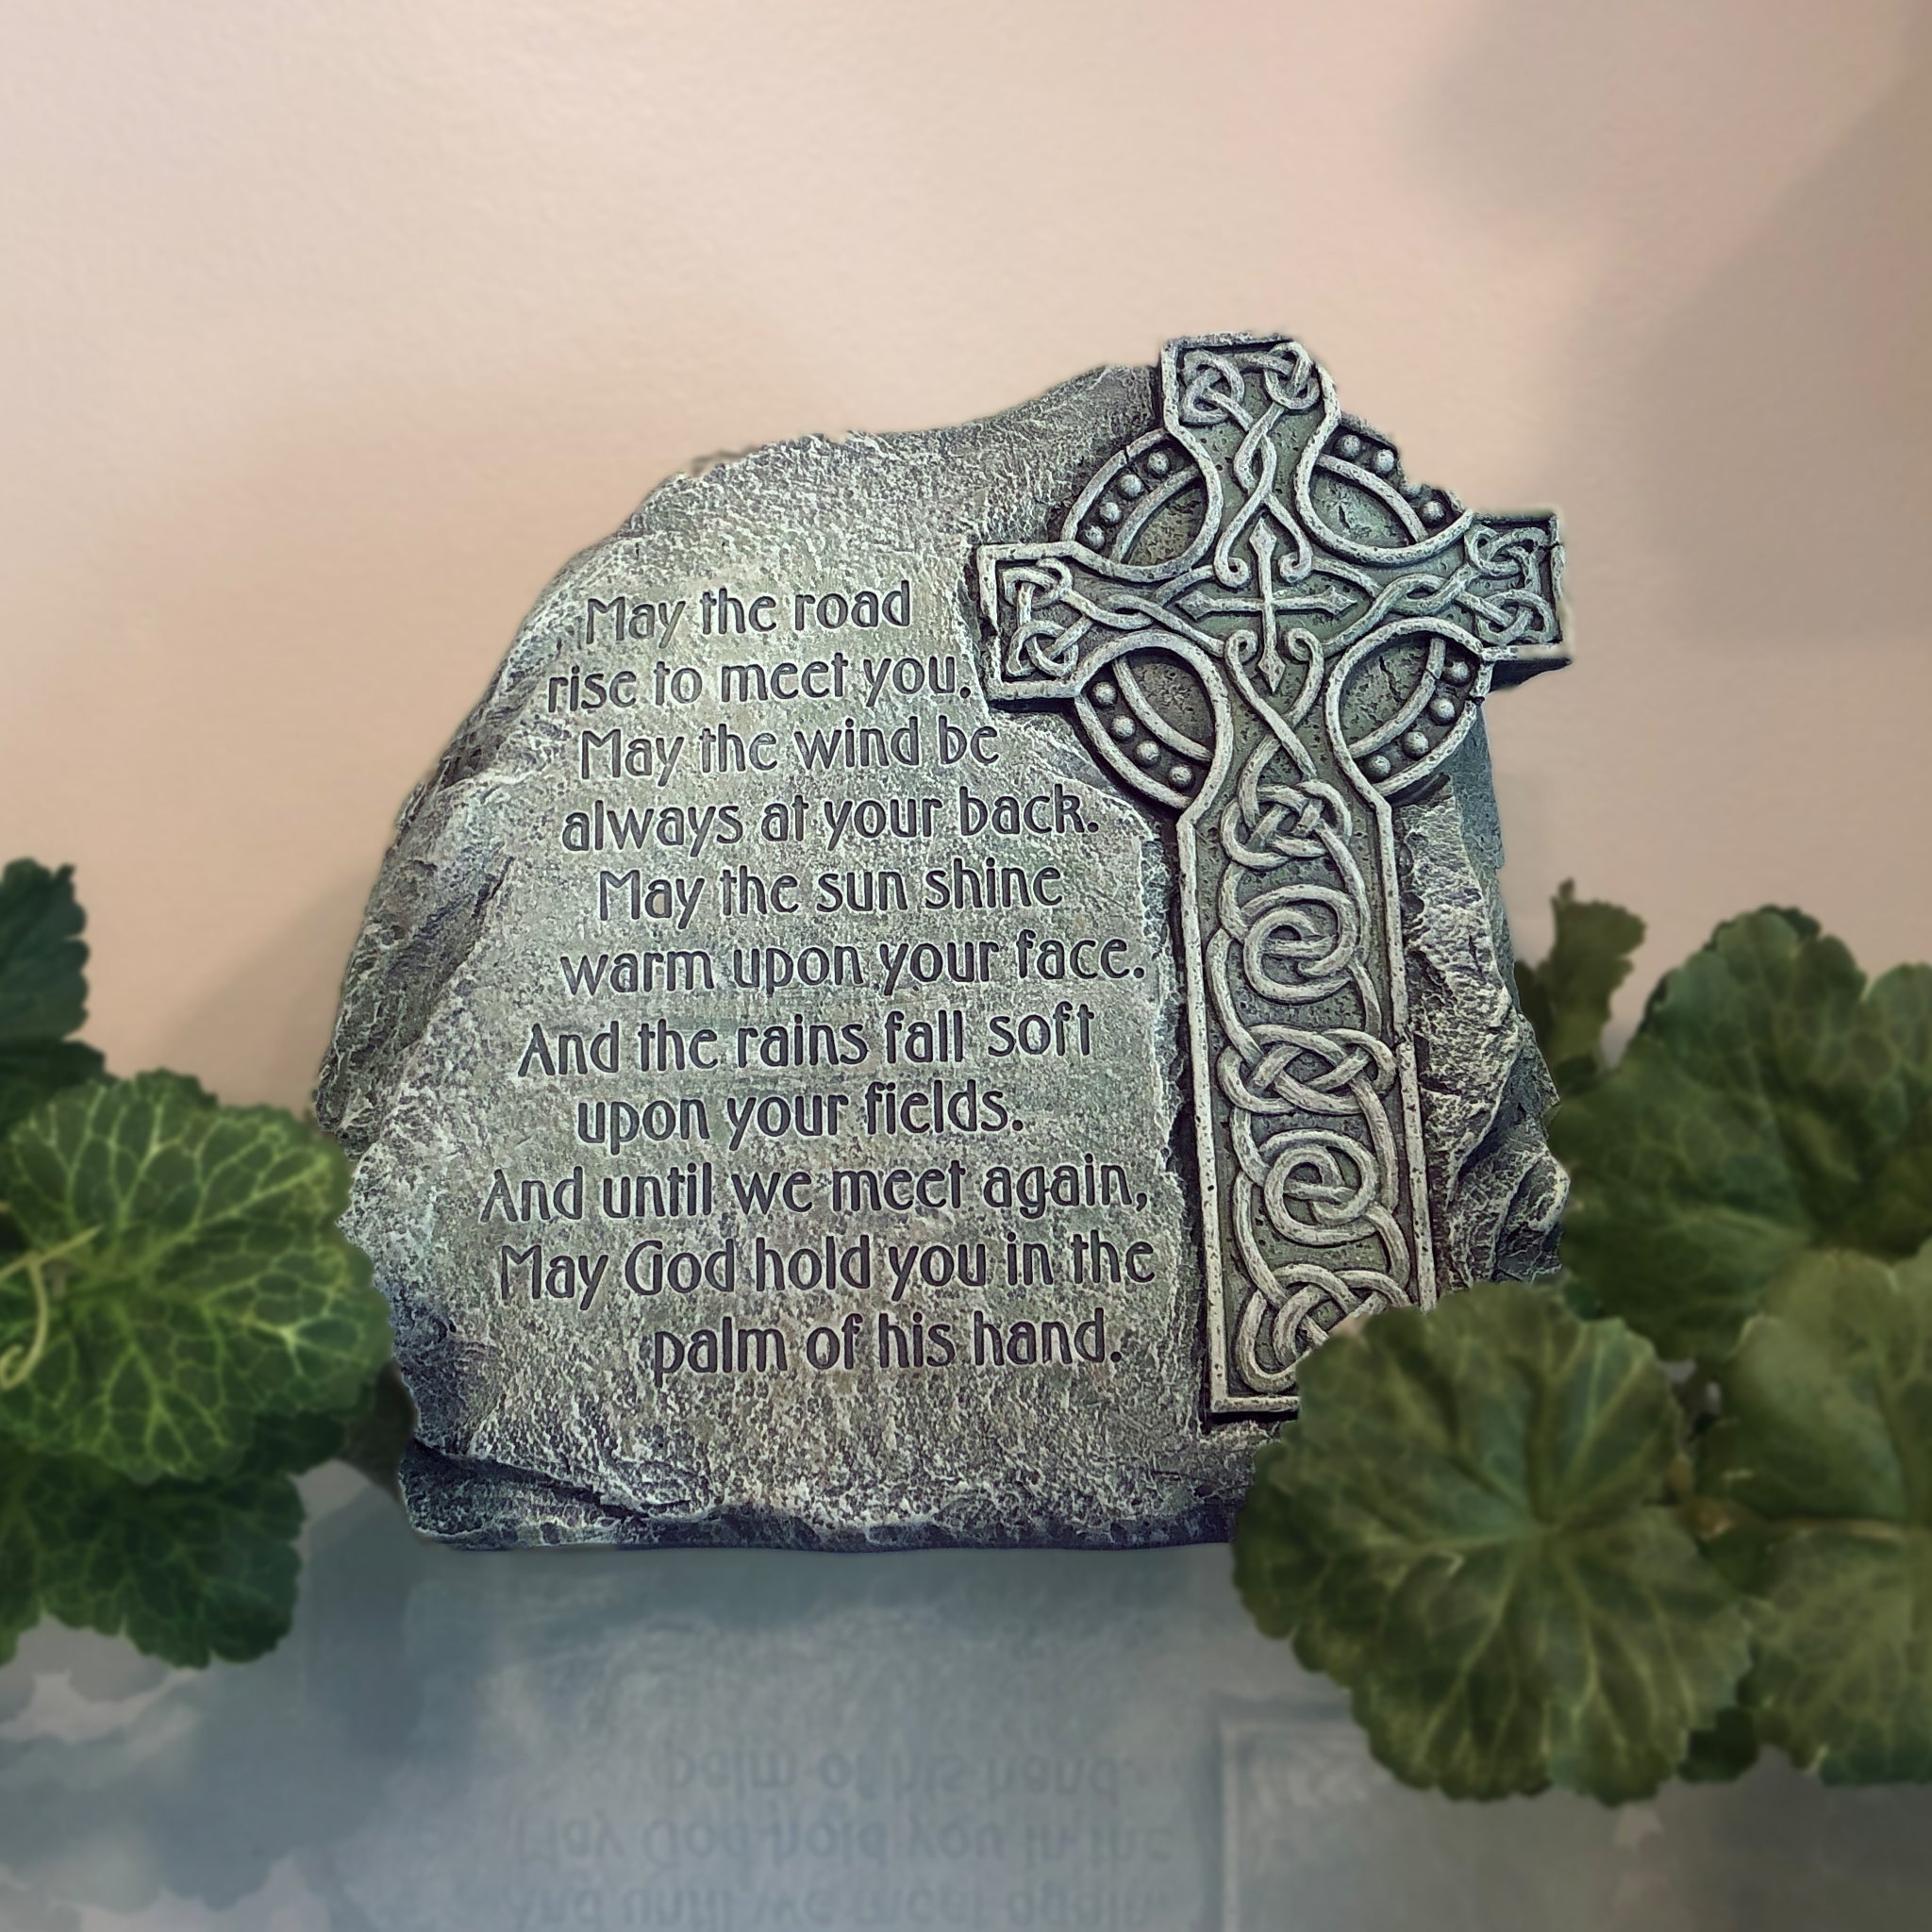 Celtic Cross Garden Stone with Verse